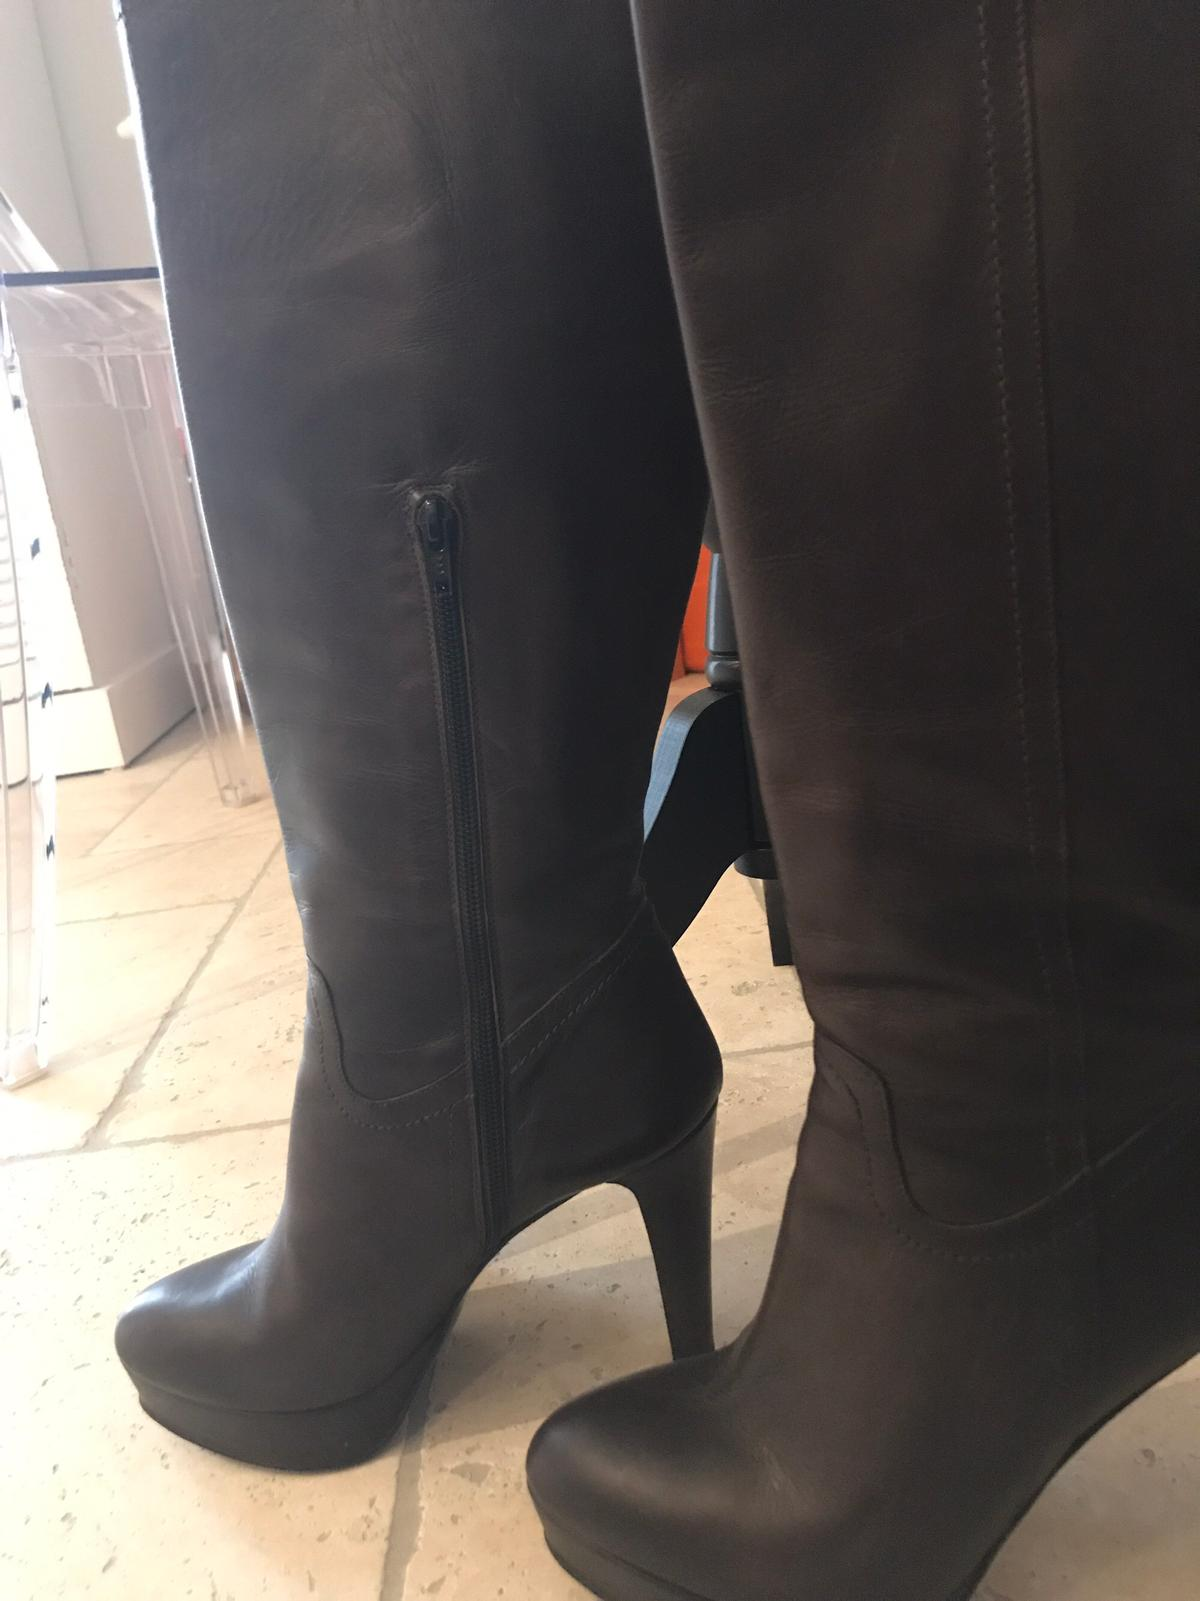 00 In Sale Evita Stiefel Shoes For €73 70569 Stuttgart QdrBothCsx